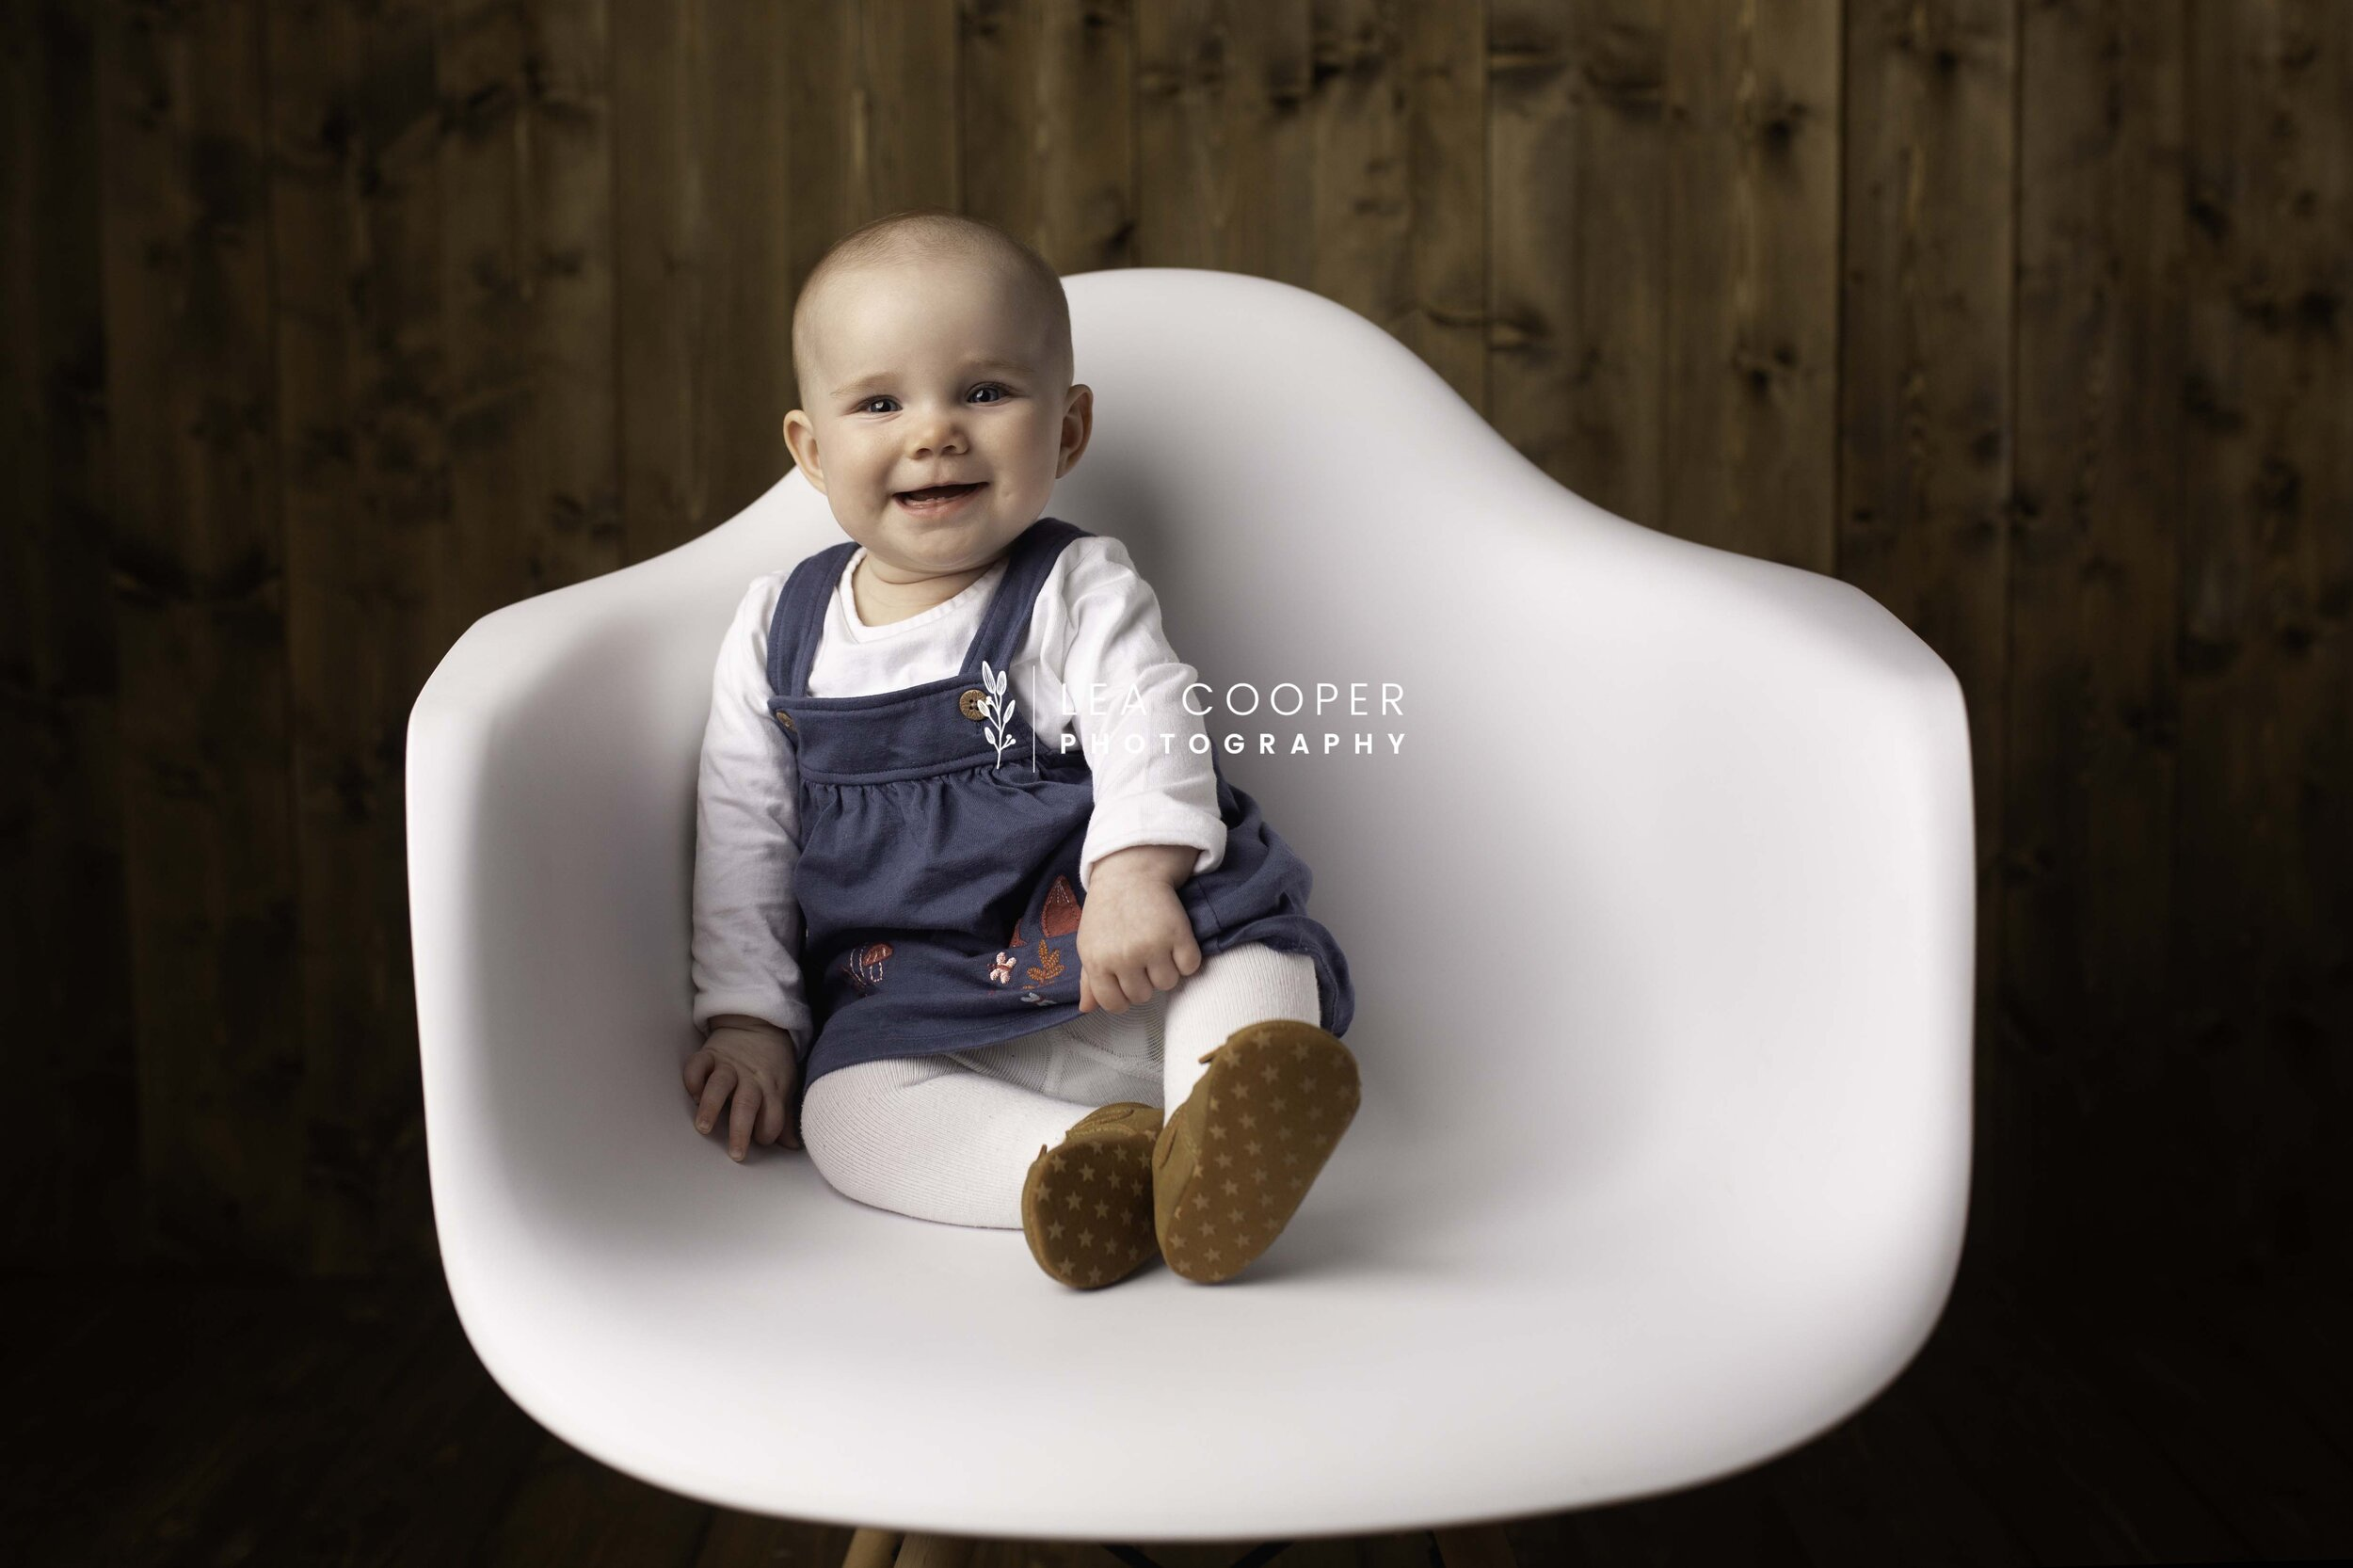 lea-cooper-photography-family-session-family-photoshoot-sitter-session-willenhall-wolverhampton-west-midlands-12.jpg